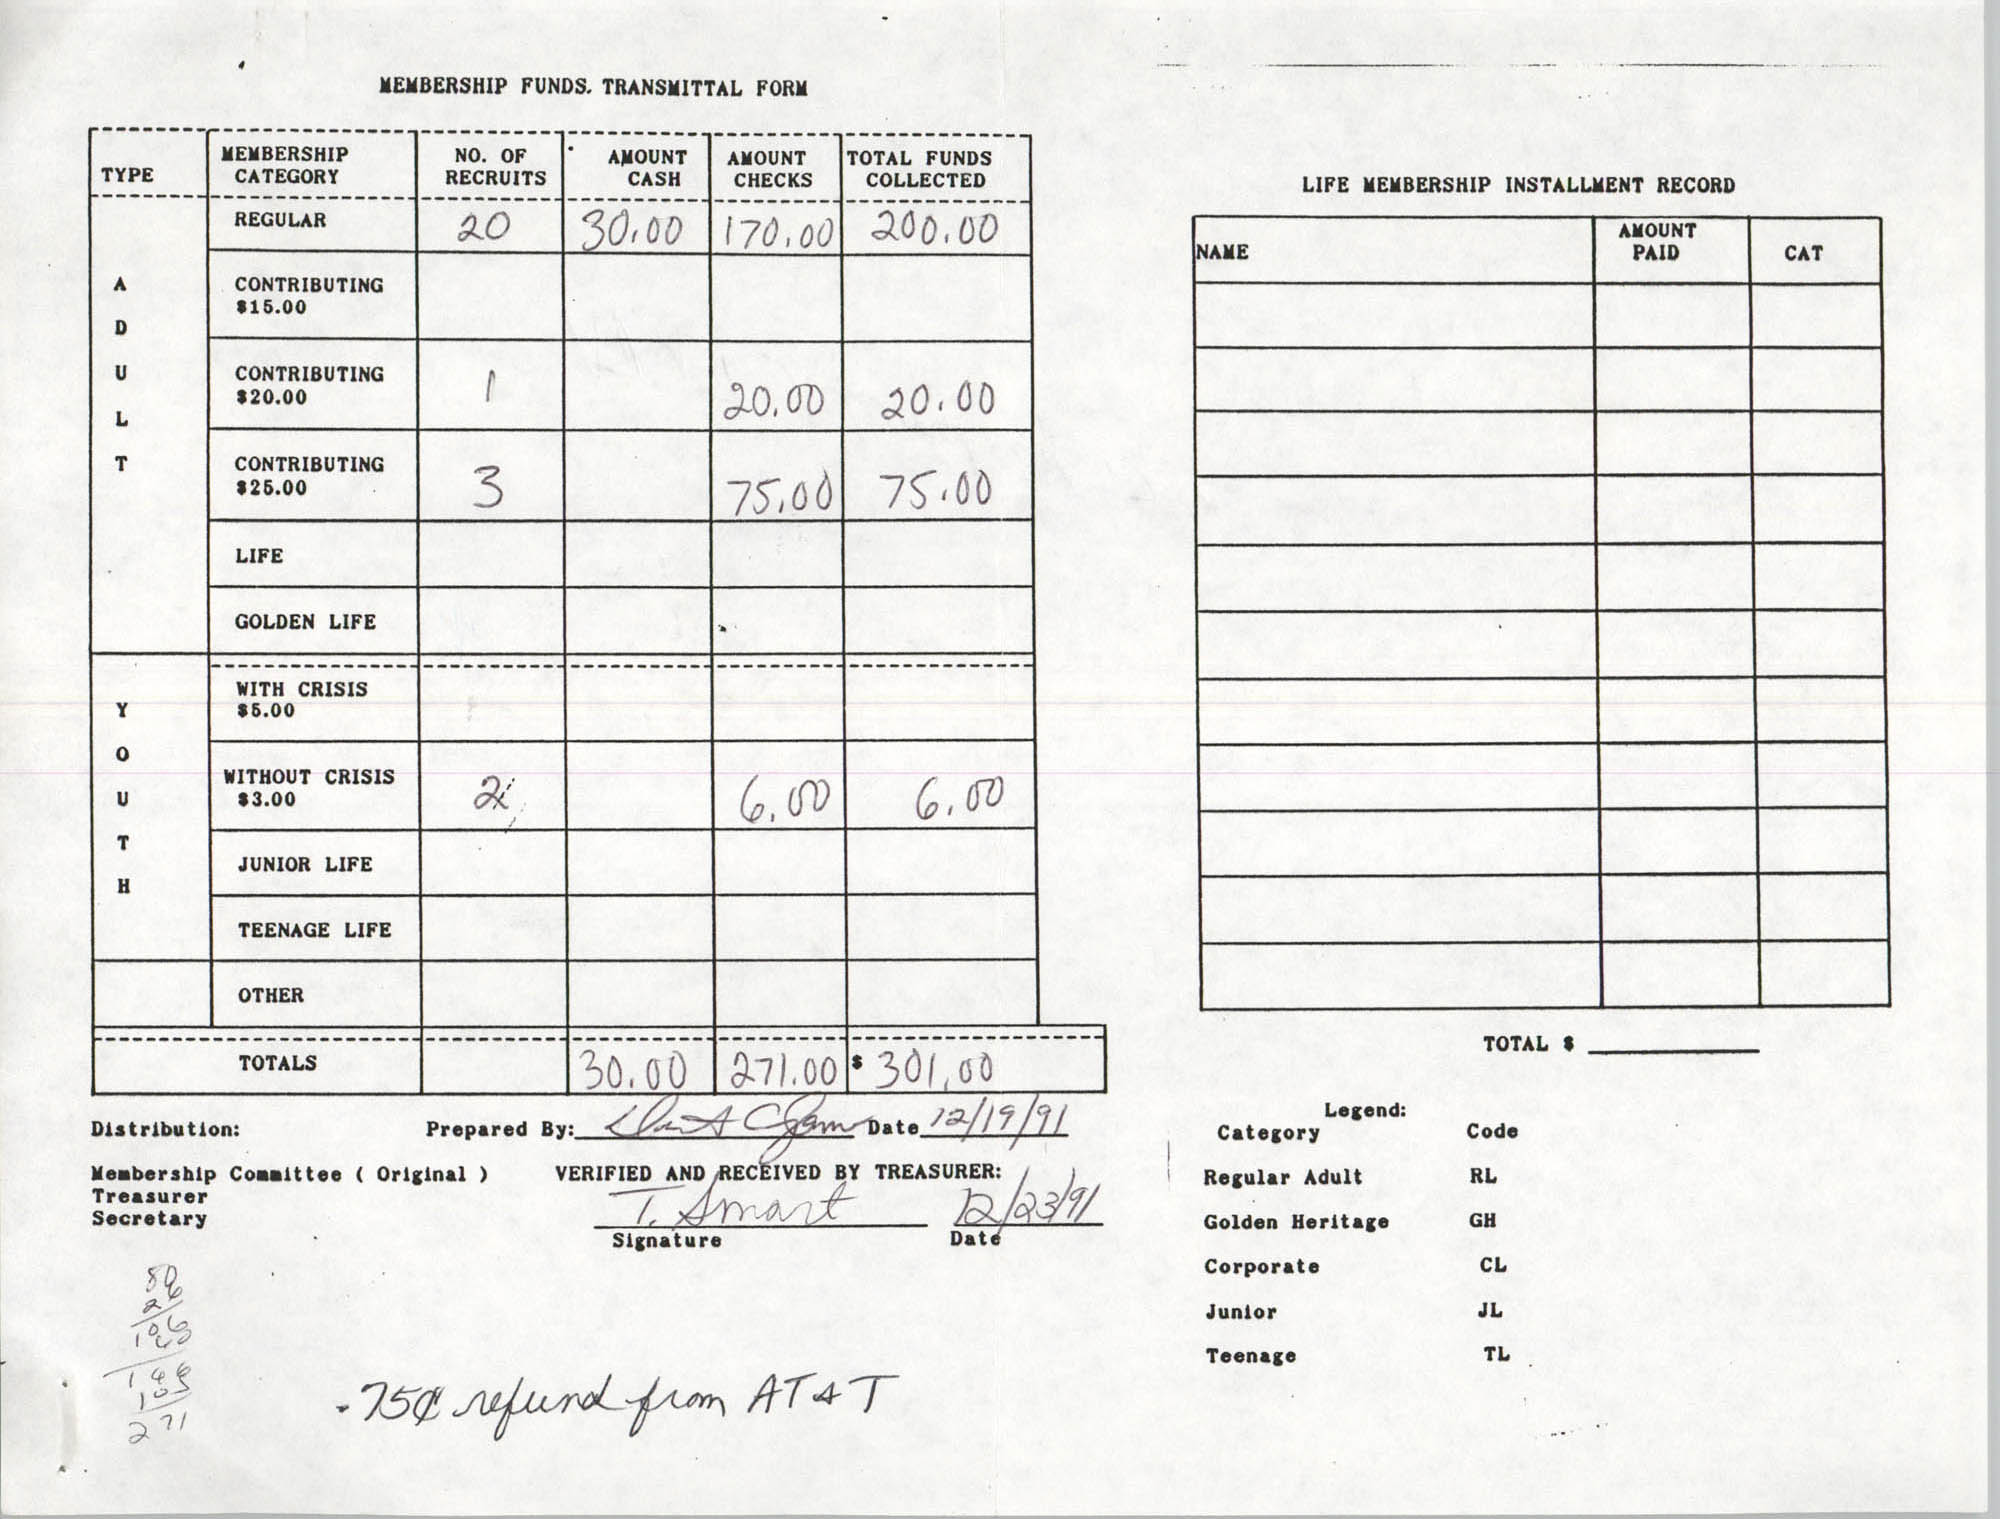 Charleston Branch of the NAACP Funds Transmittal Forms, December 1991, Page 1